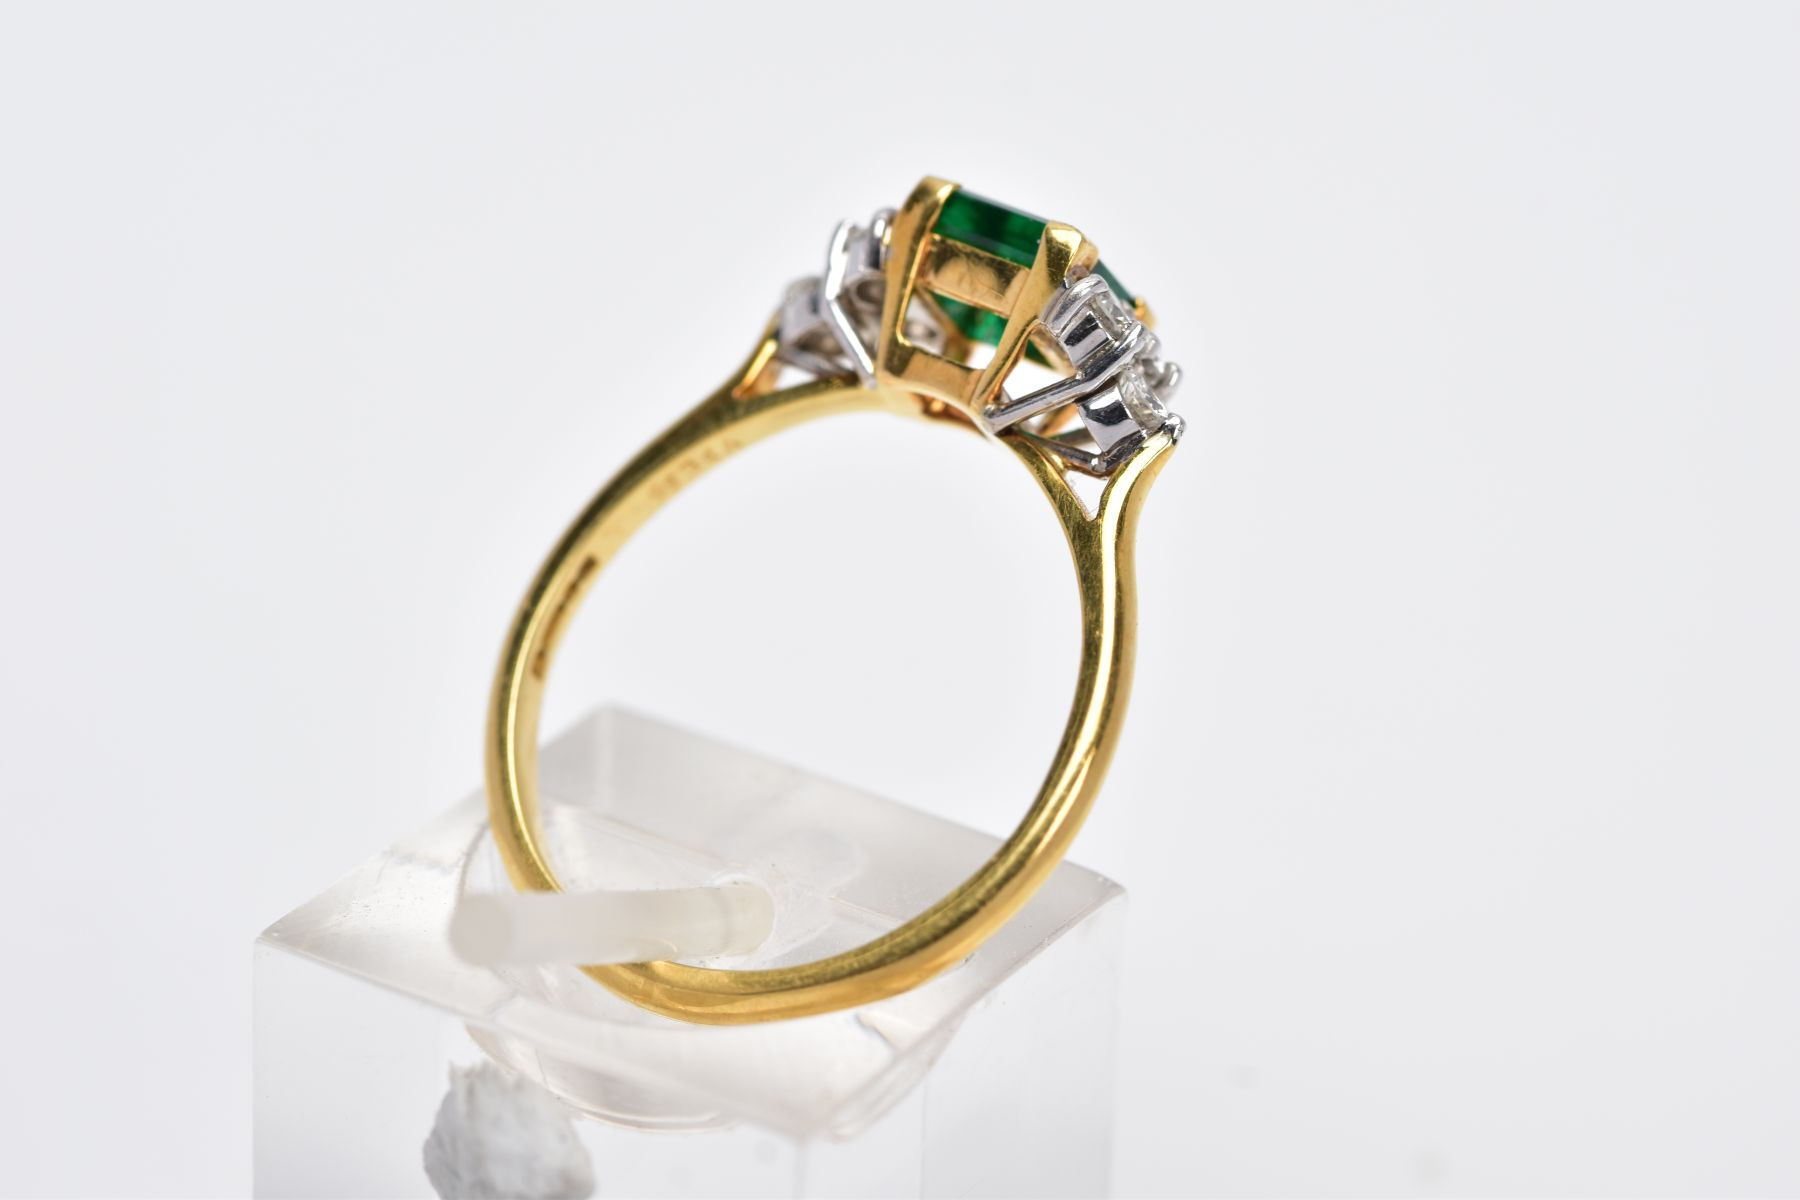 A LATE 20TH CENTURY 18CT GOLD EMERALD AND DIAMOND RING, centring on a square cut emerald measuring - Image 3 of 5